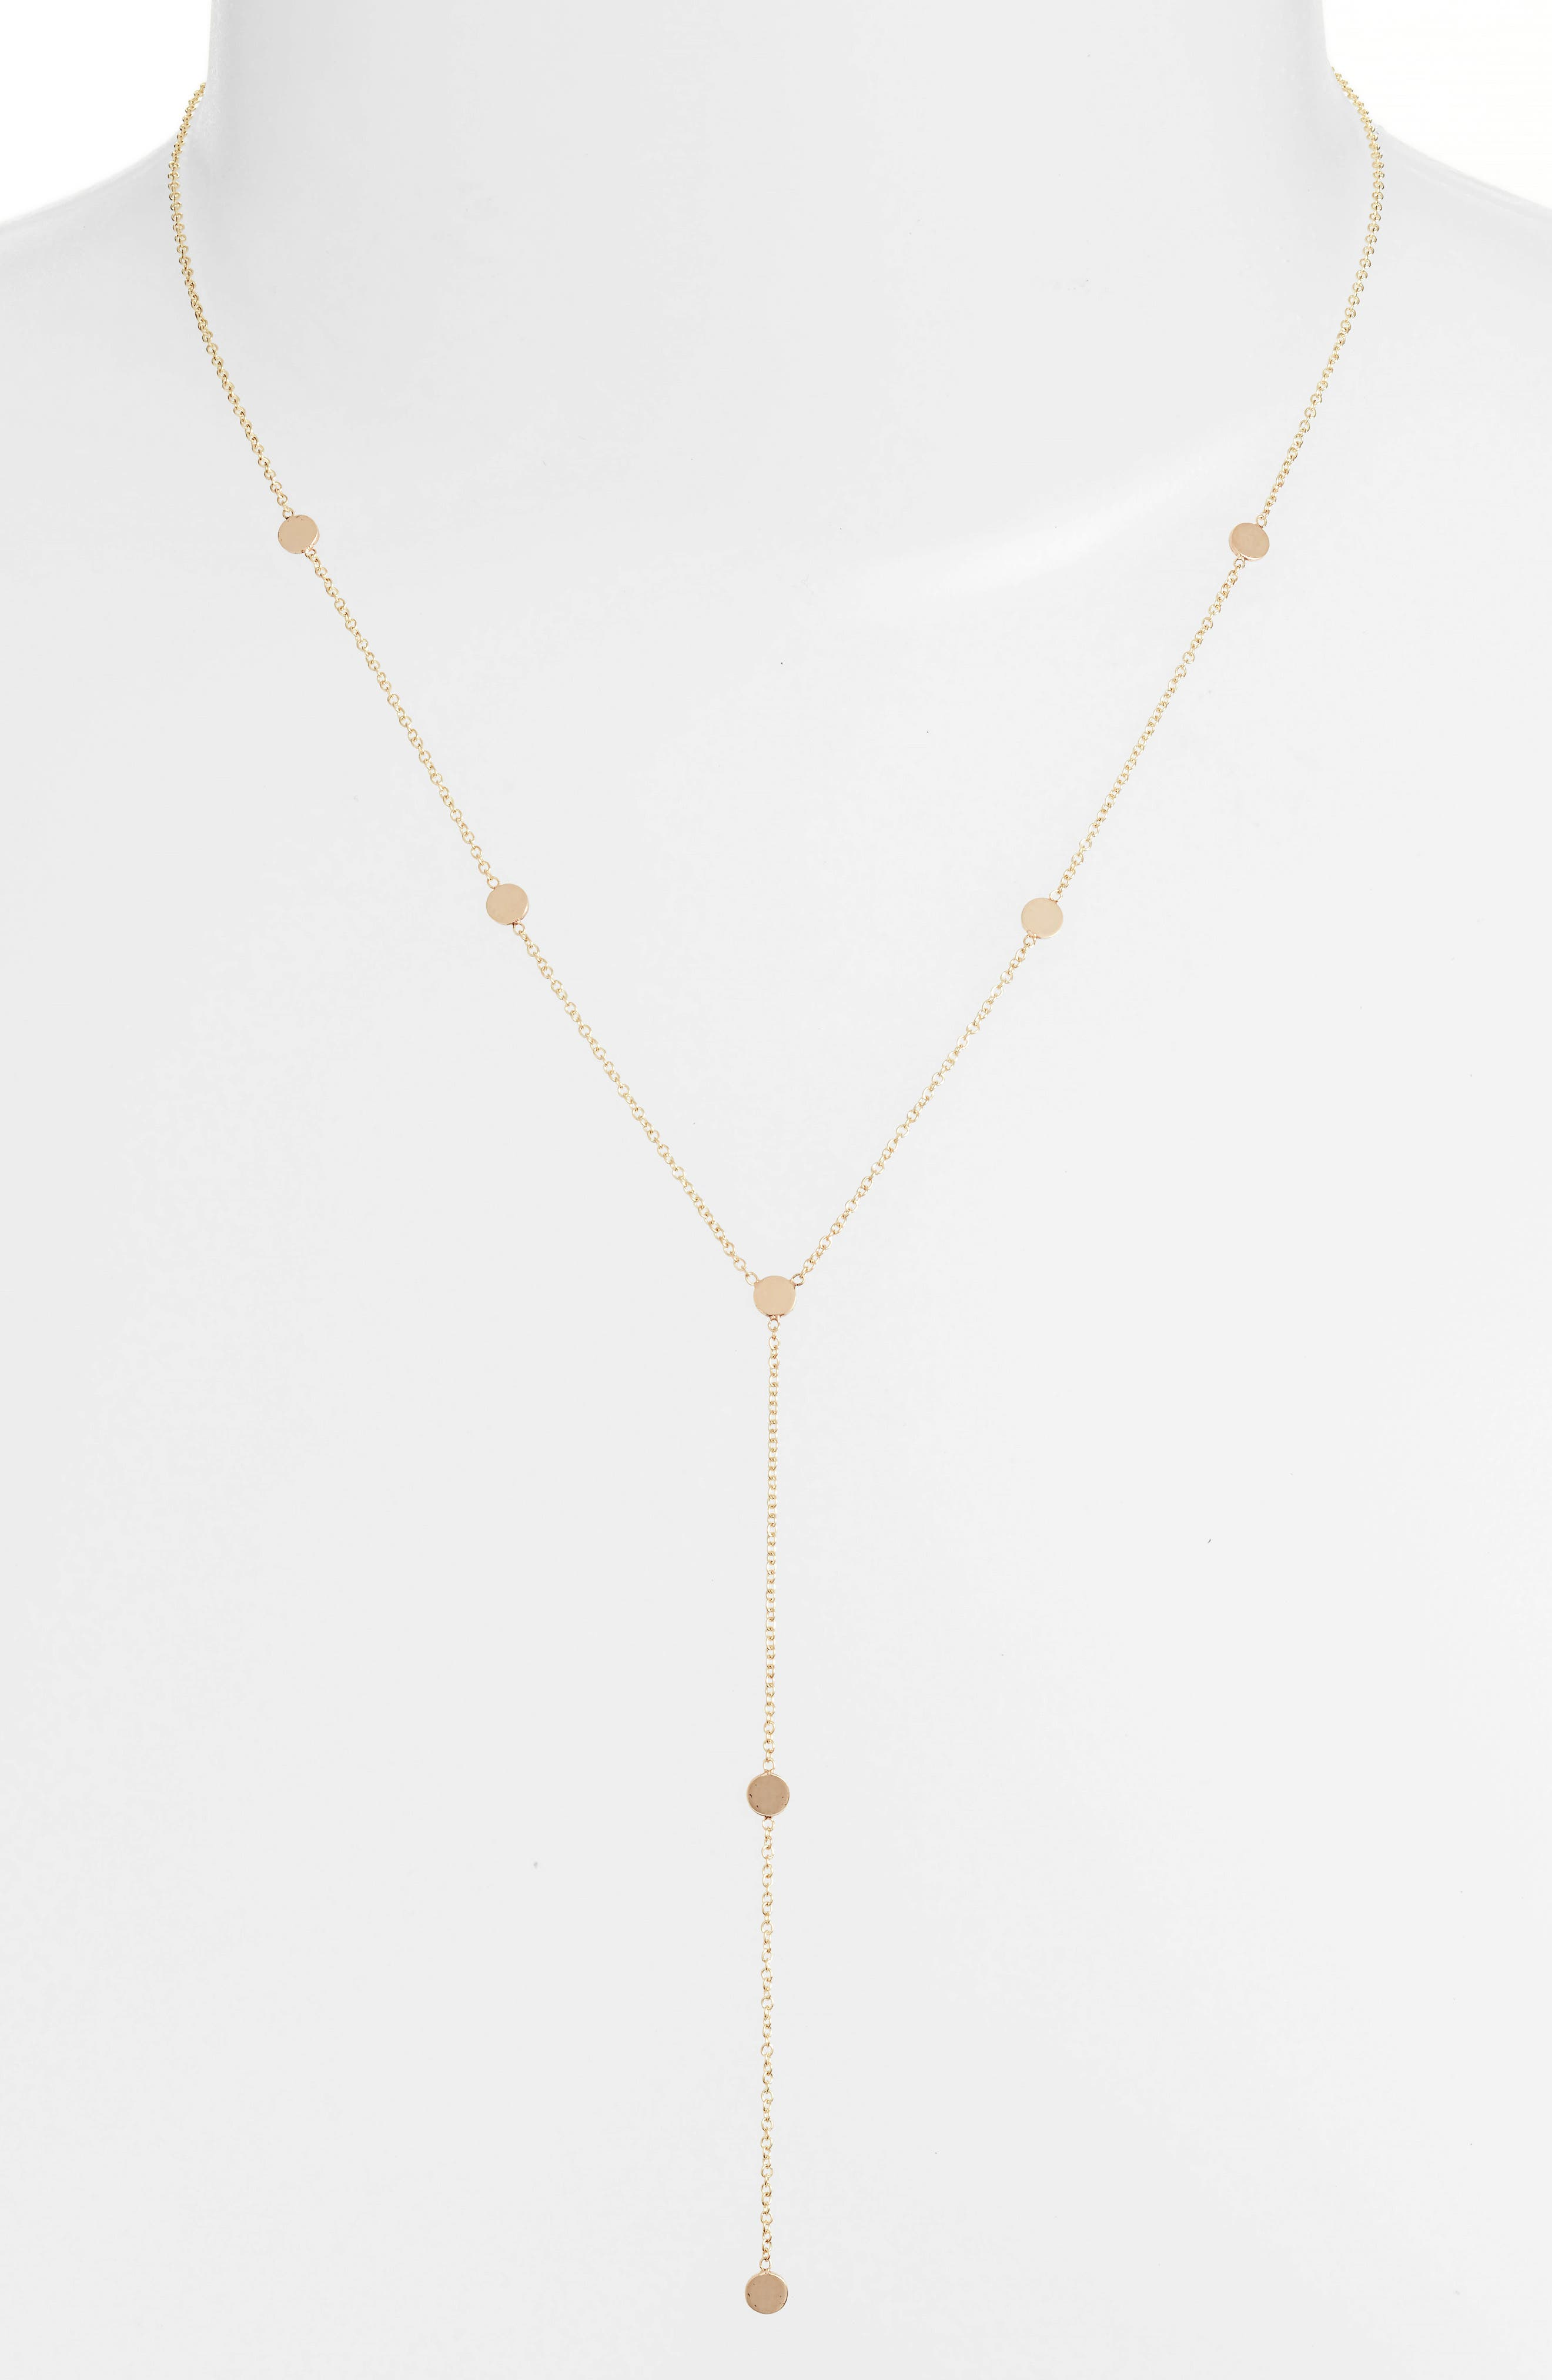 Itty Bitty Round Disk Lariat Necklace,                             Alternate thumbnail 2, color,                             YELLOW GOLD